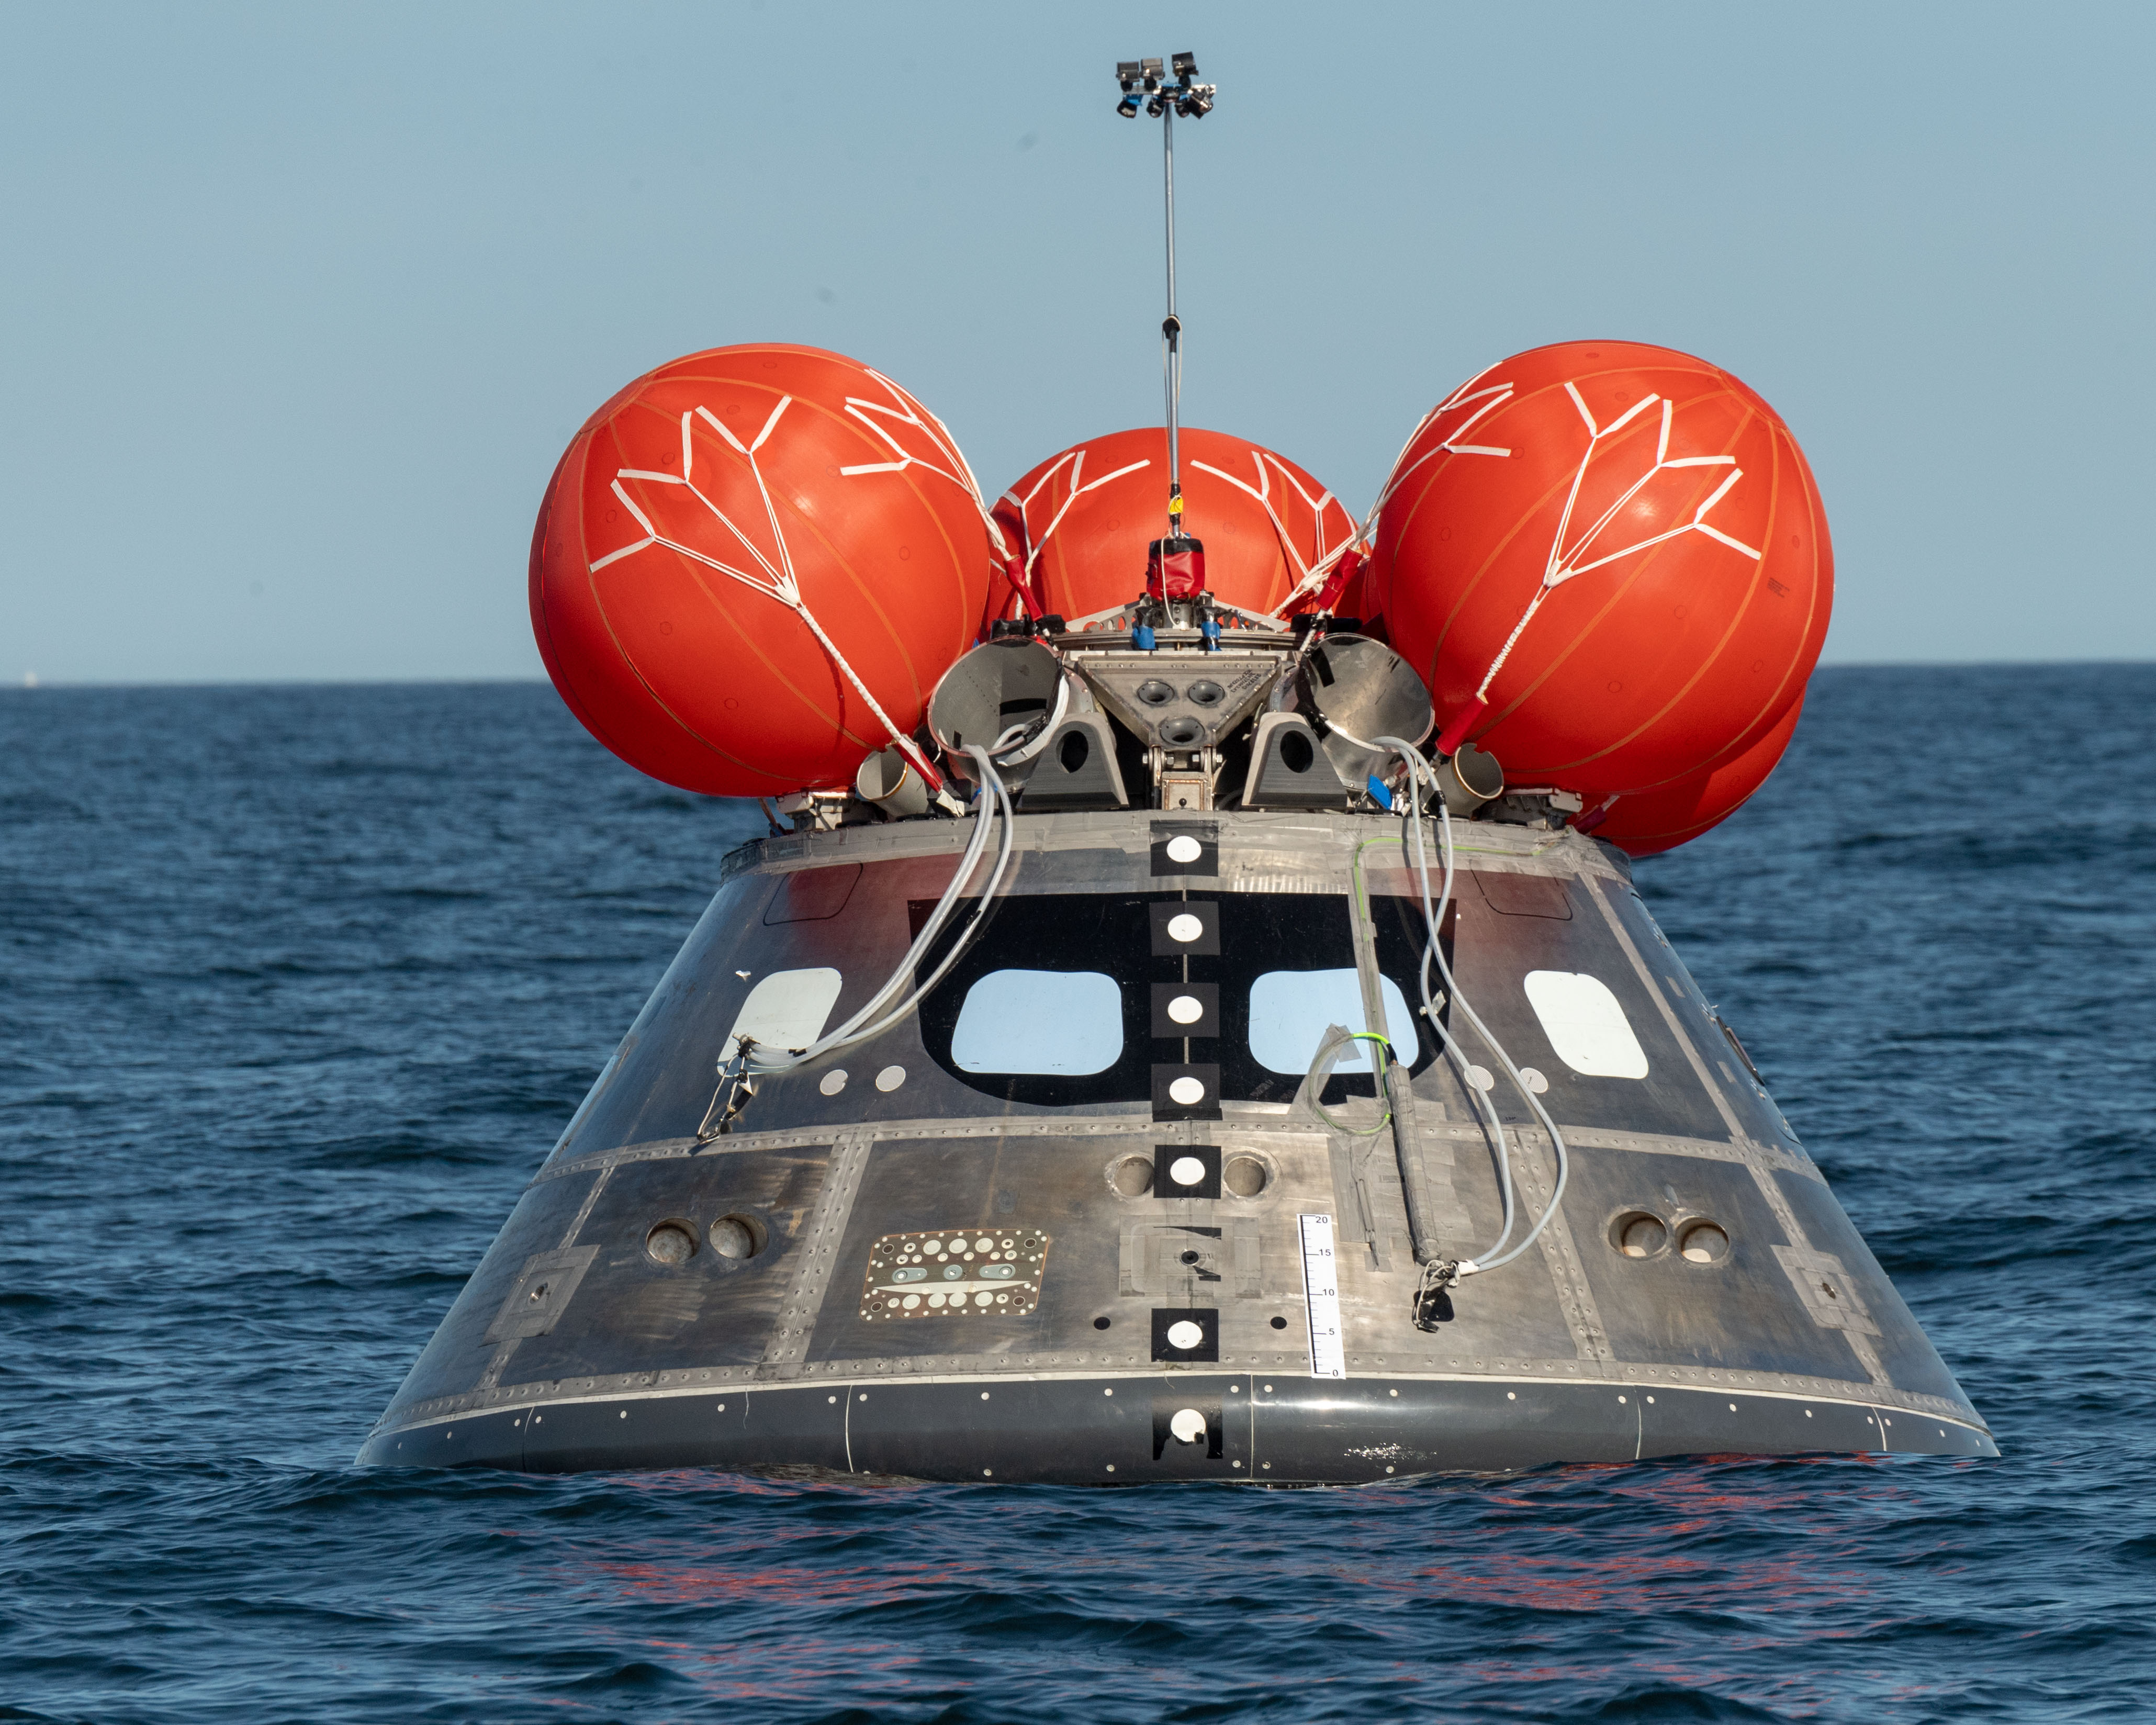 Tests Ensure Orion Spacecraft is Upright After Splashdown